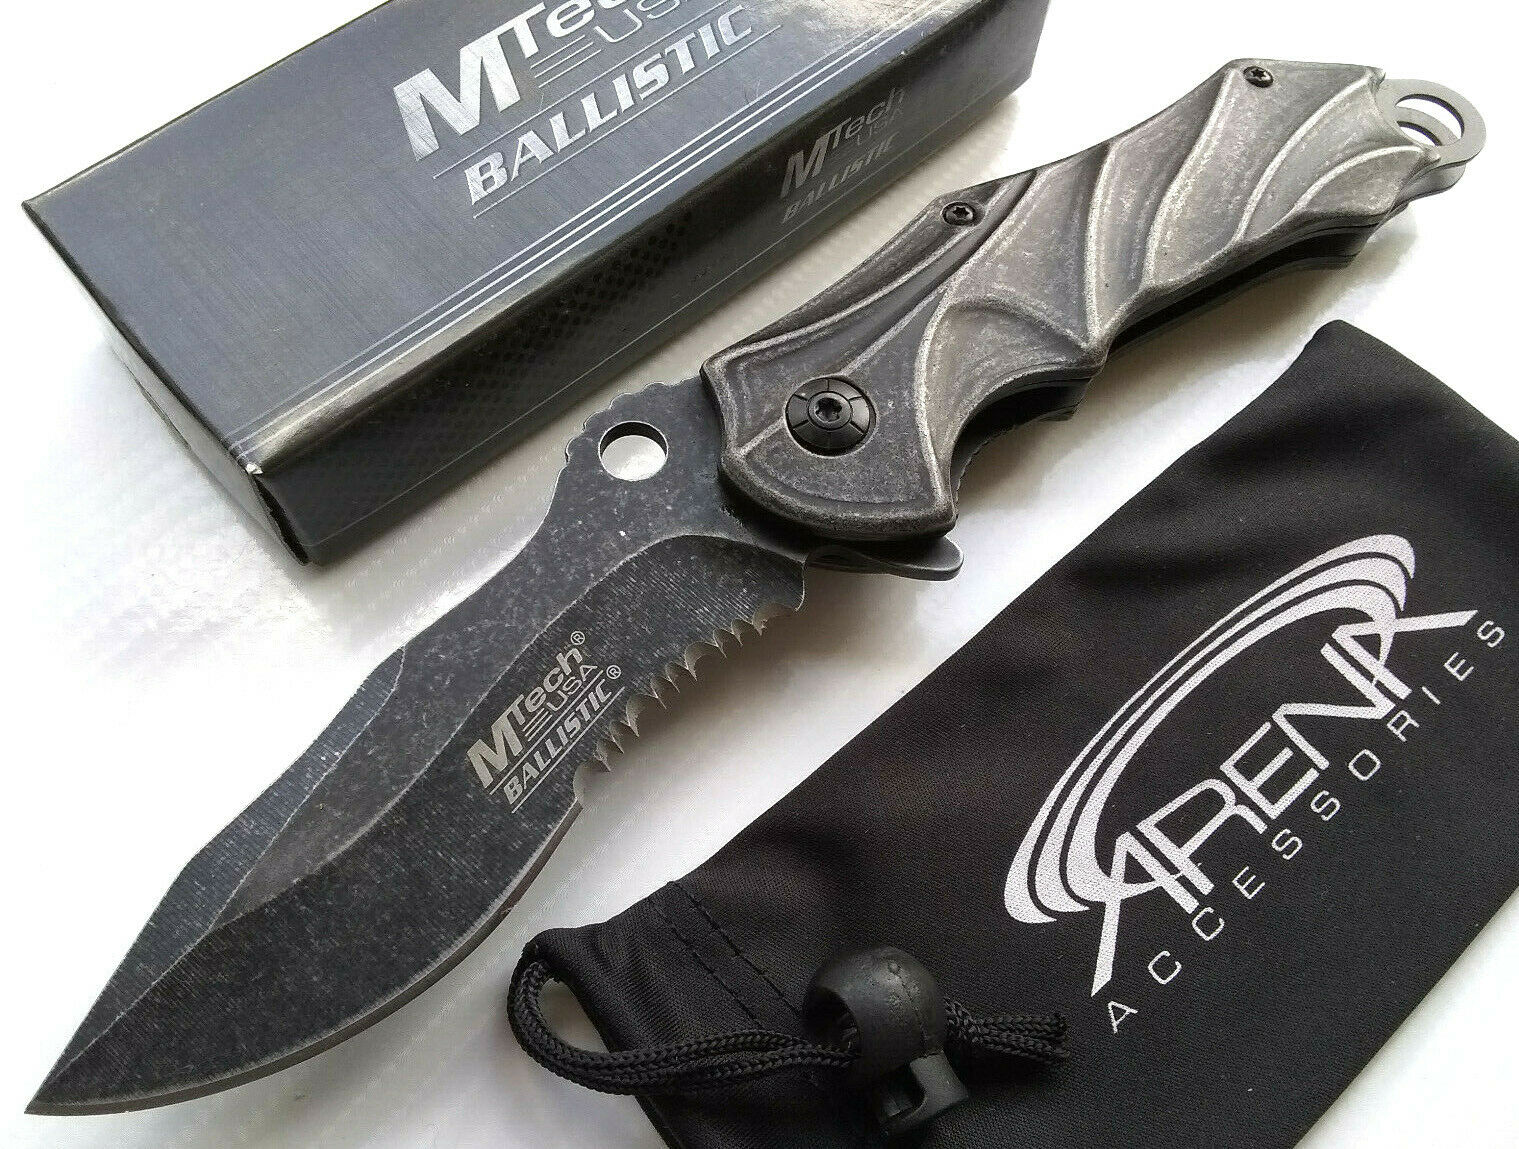 Recurve Kukri Serrated Stonewashed Blade Gray Flipper Spring Assisted Pocket Knife EDC MTech MT-A888SW Dicontinued